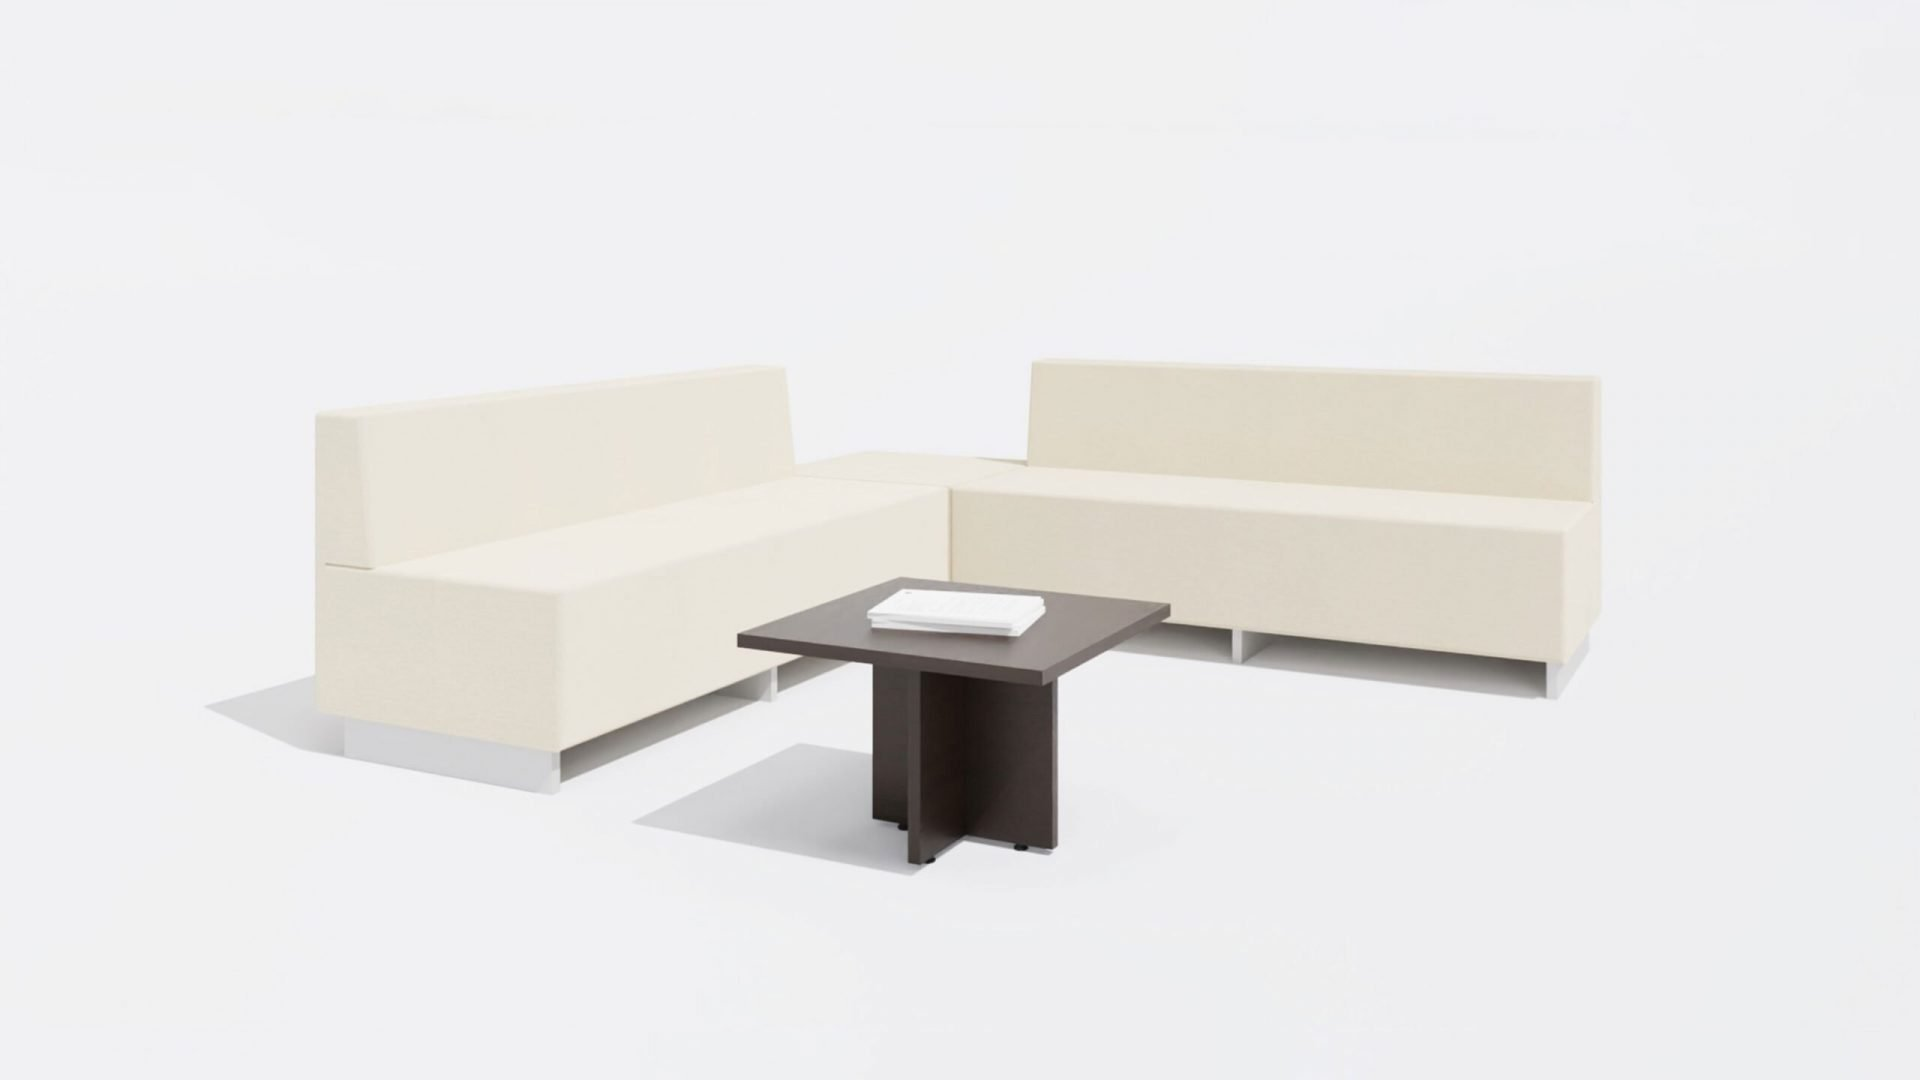 Square Coffee Table 1647 with Sofa